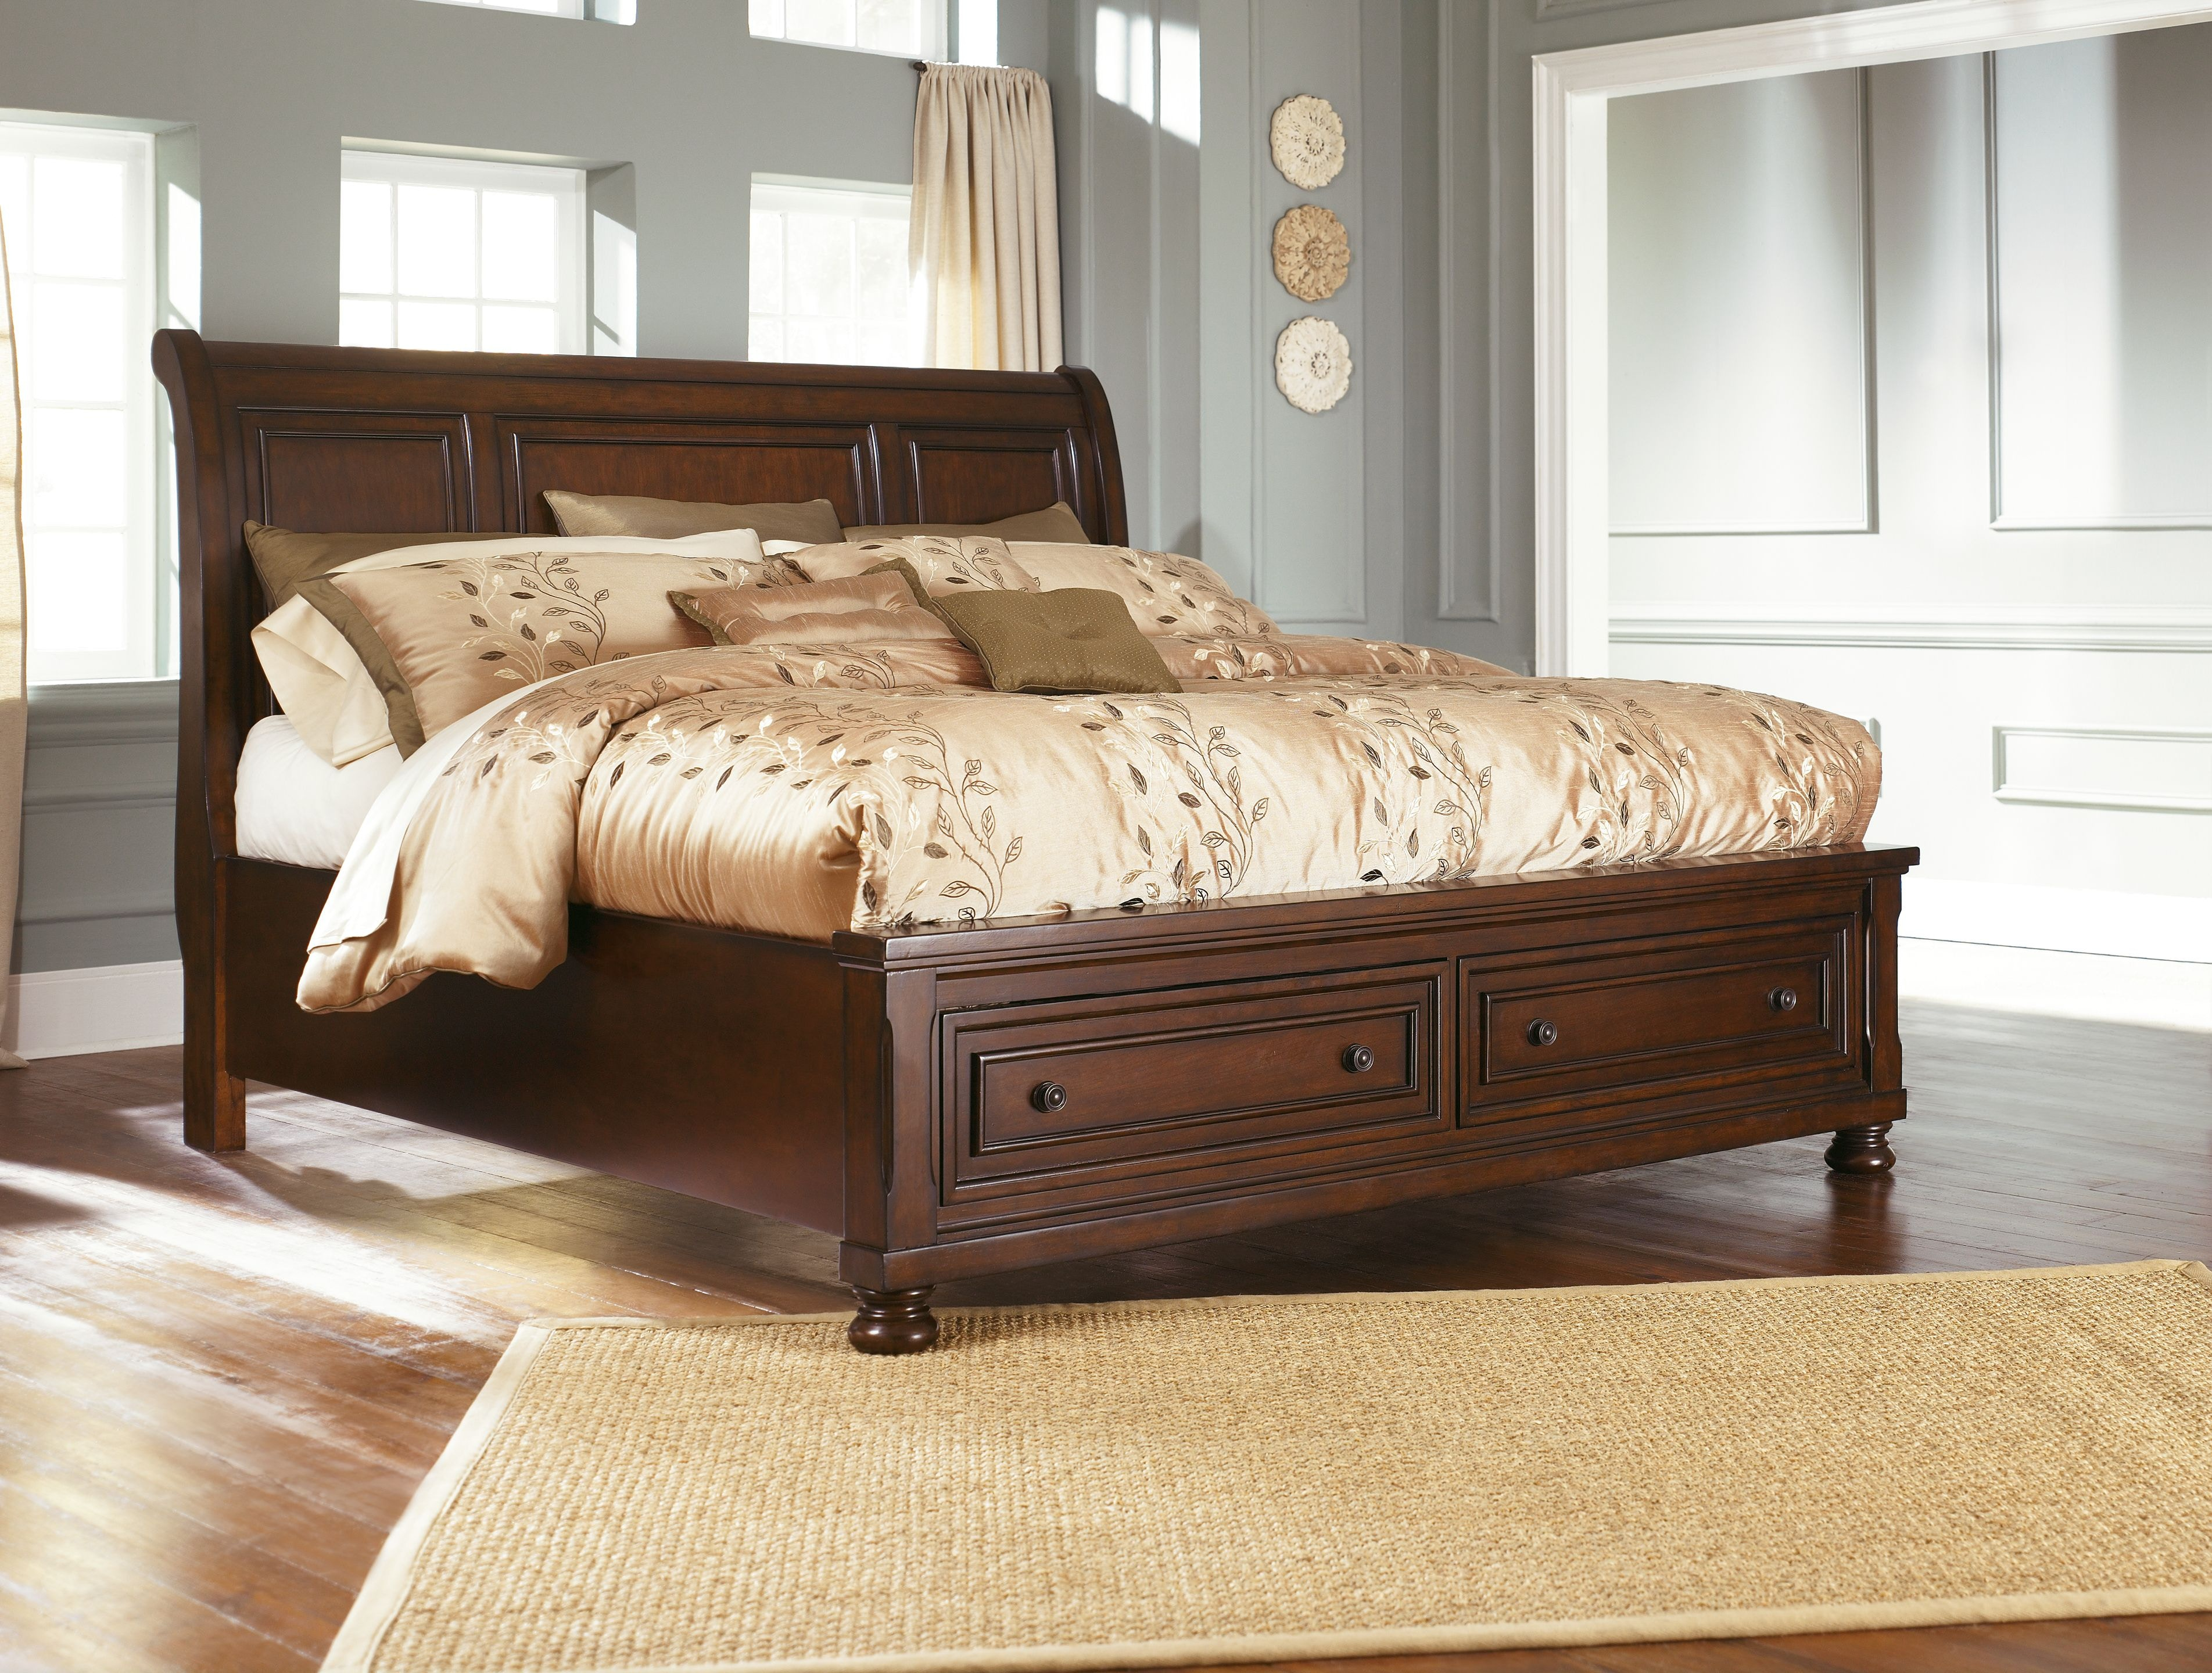 Bedding Storage Queen Sleigh Storage Bed King Available